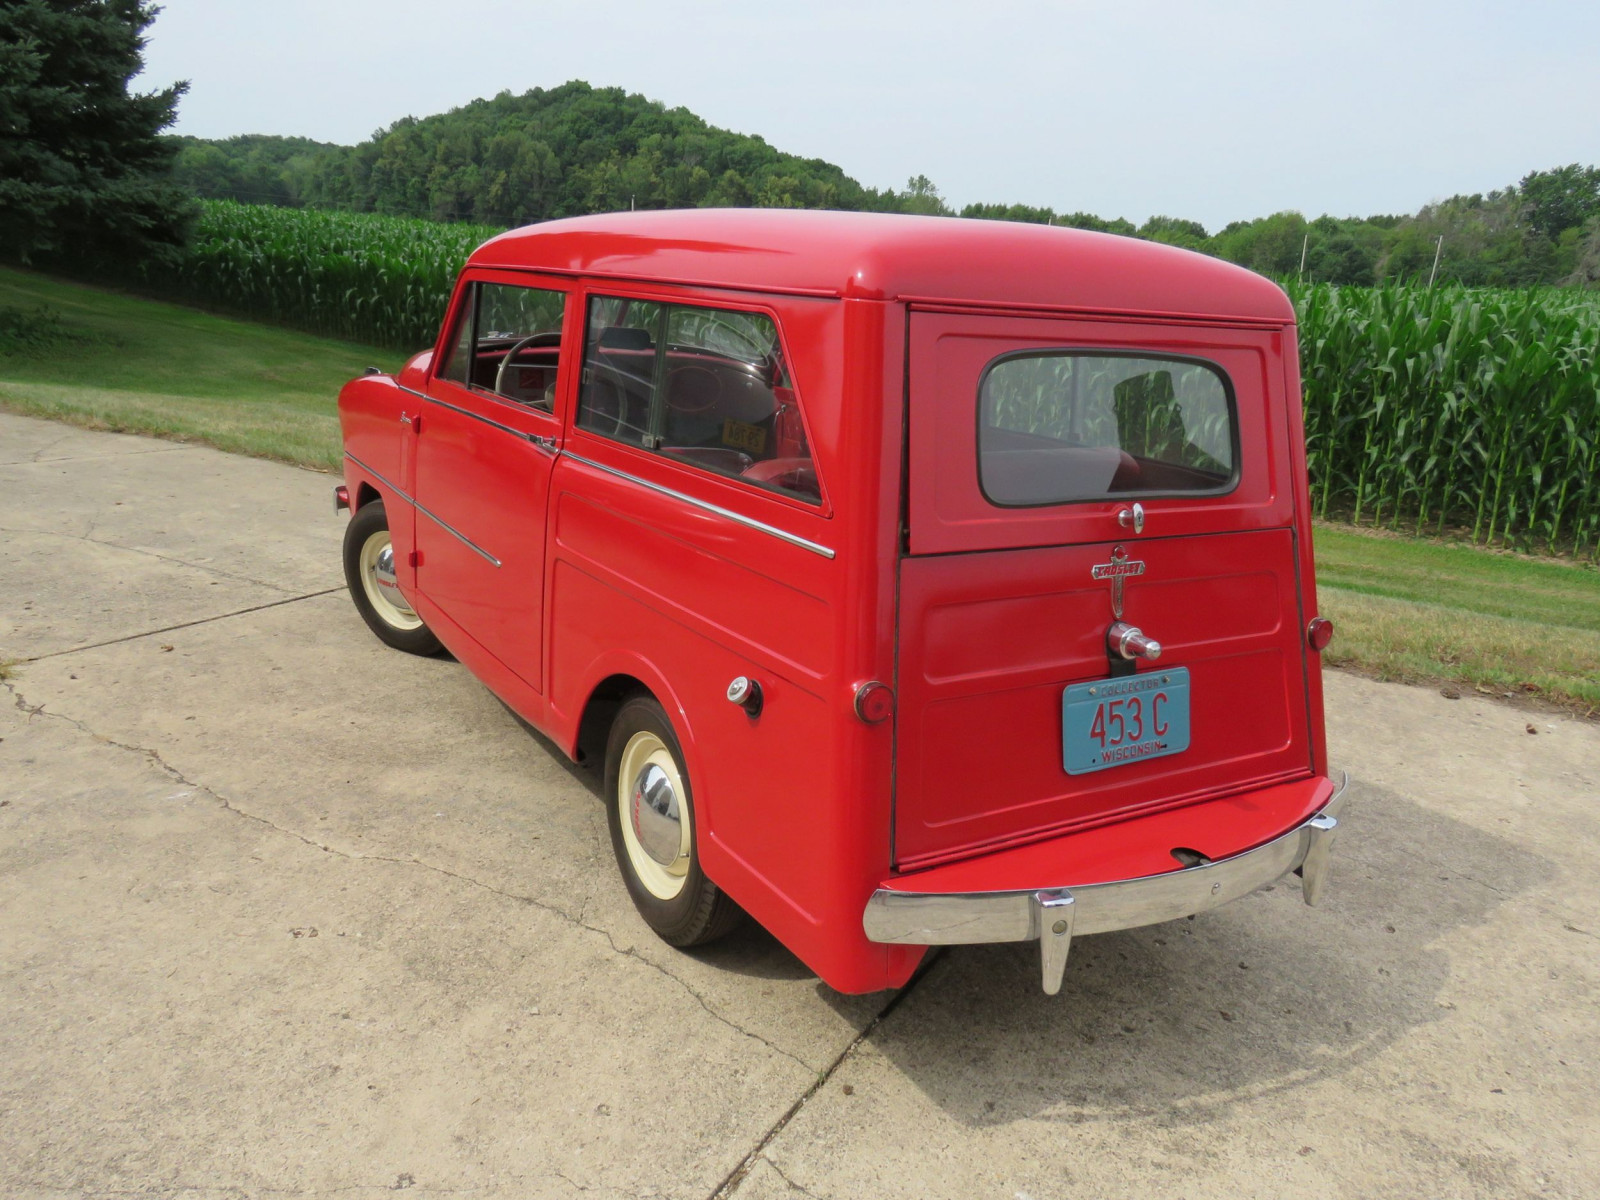 1951 Crosley Super 2dr Station wagon - Image 4